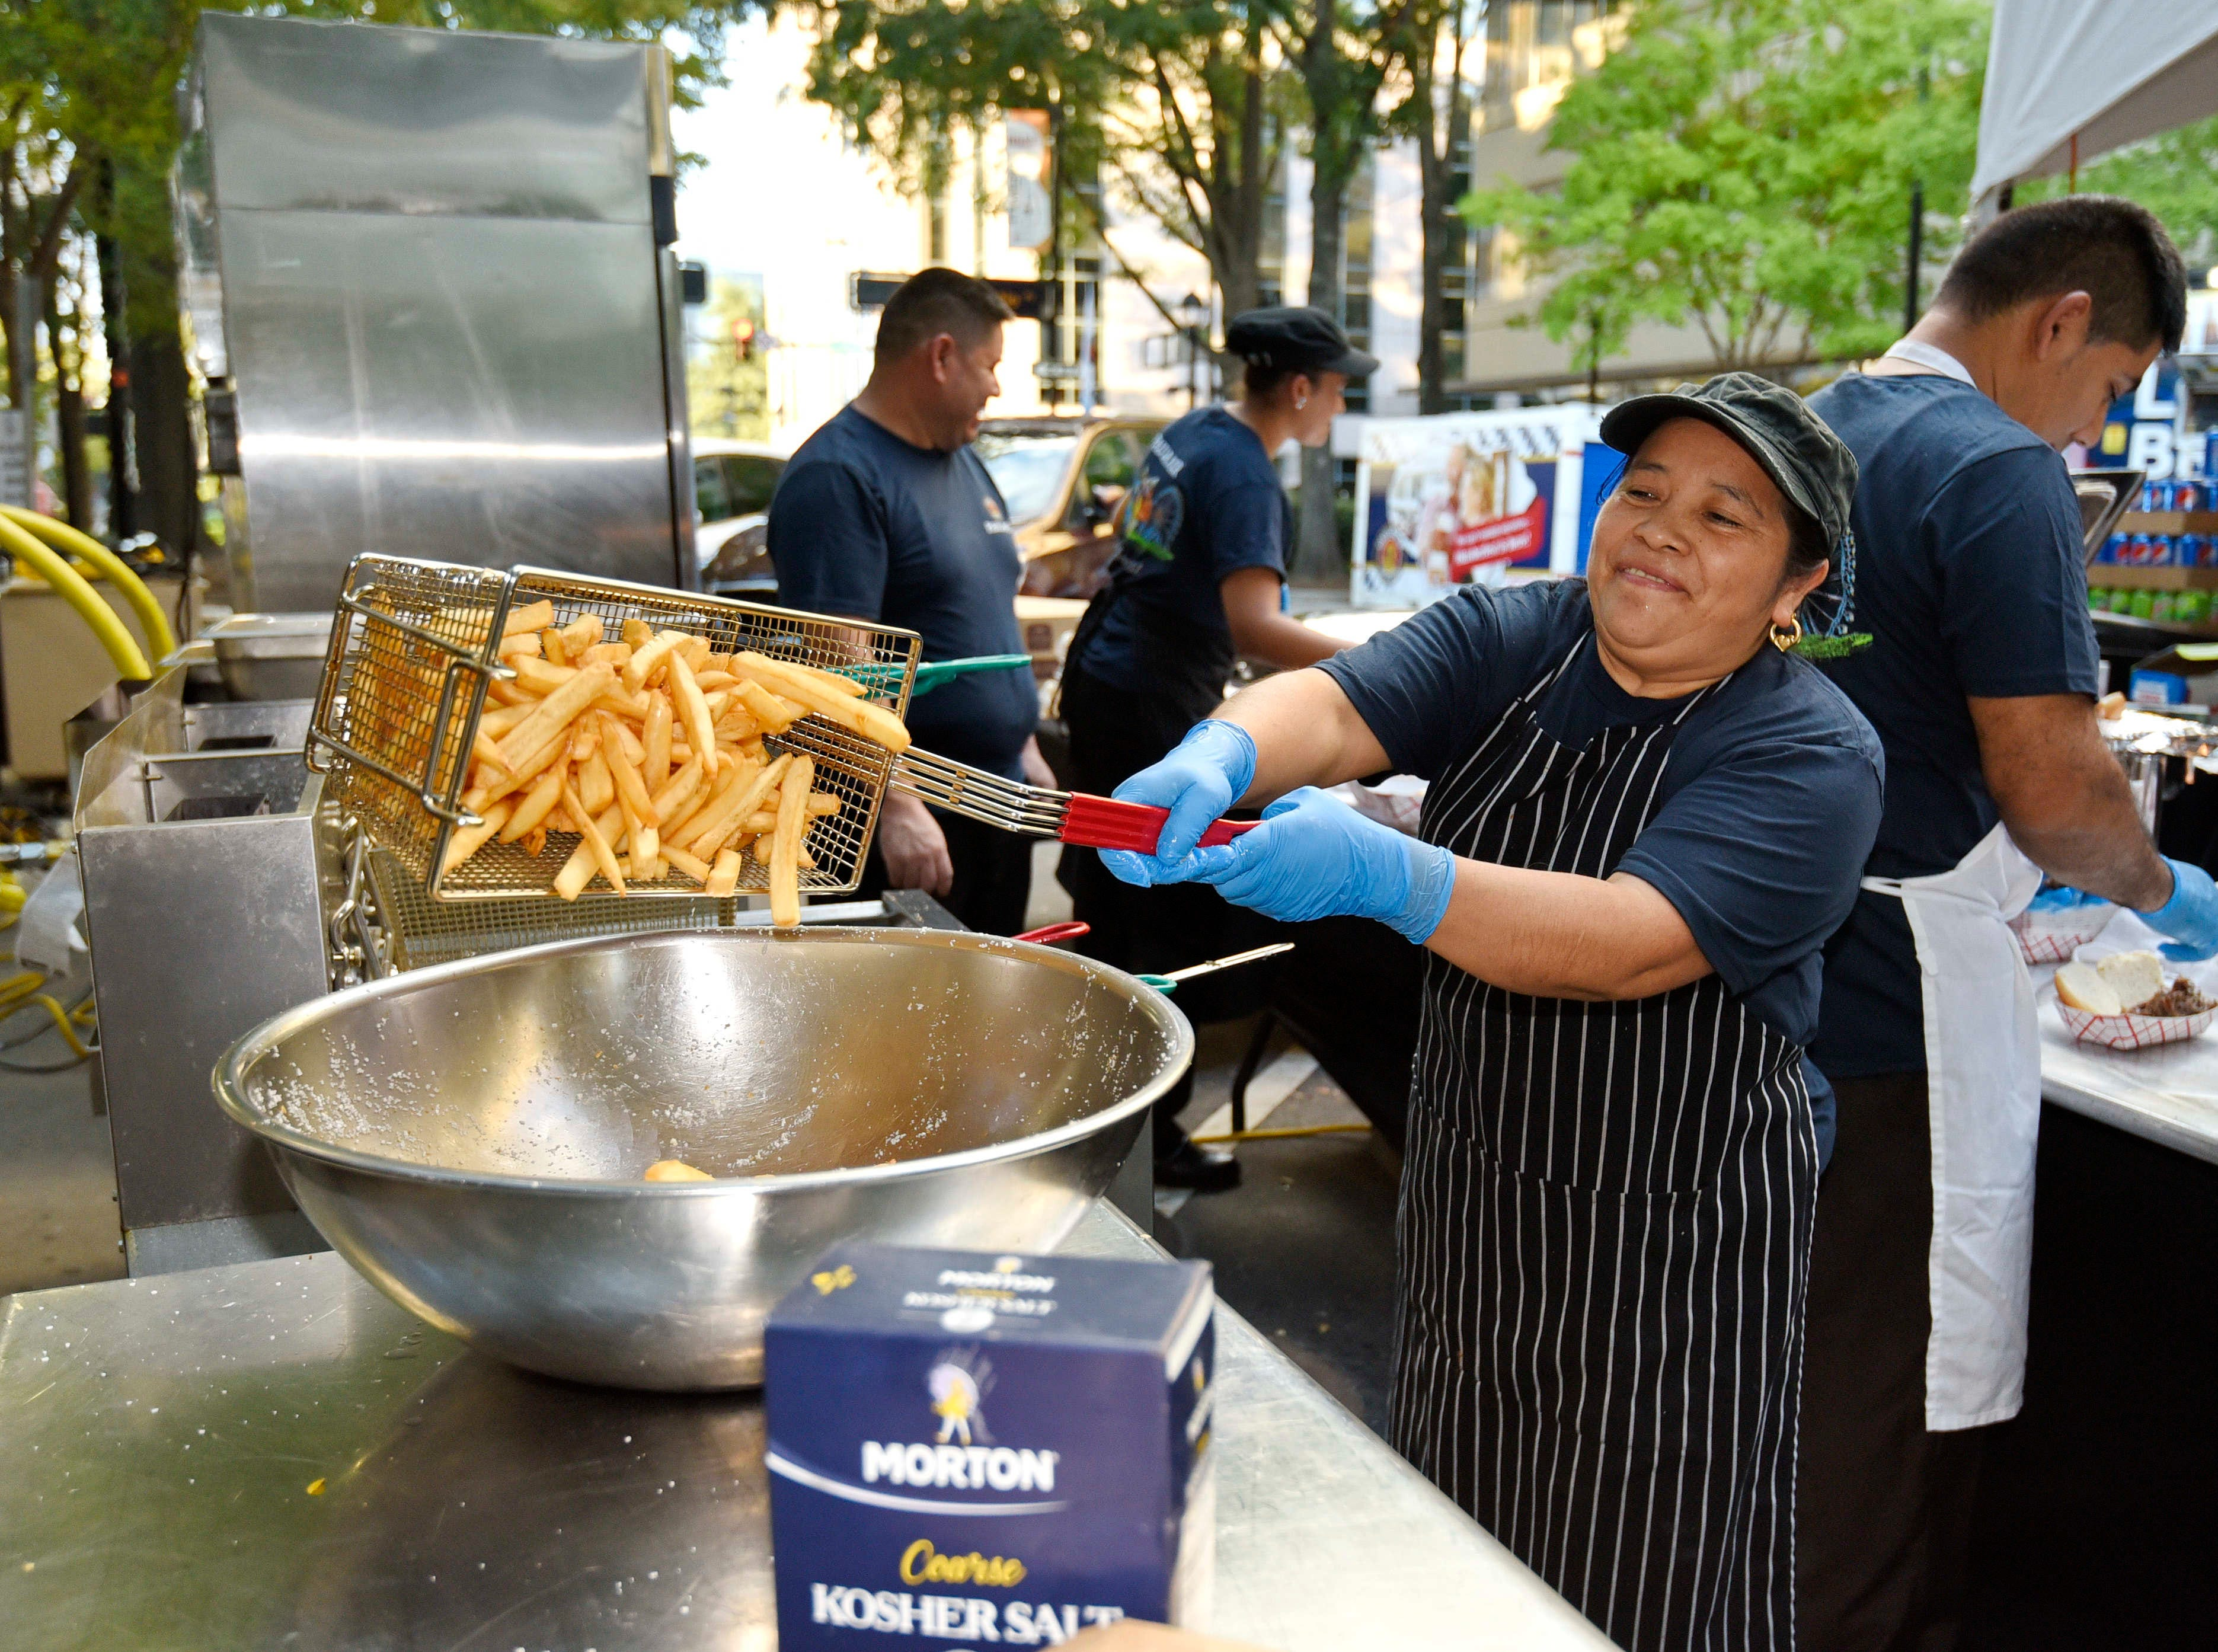 Workers make the fries during Oktoberfest which kicked off at NOMA Square in downtown Greenville Thursday, Oct. 4,  2018.